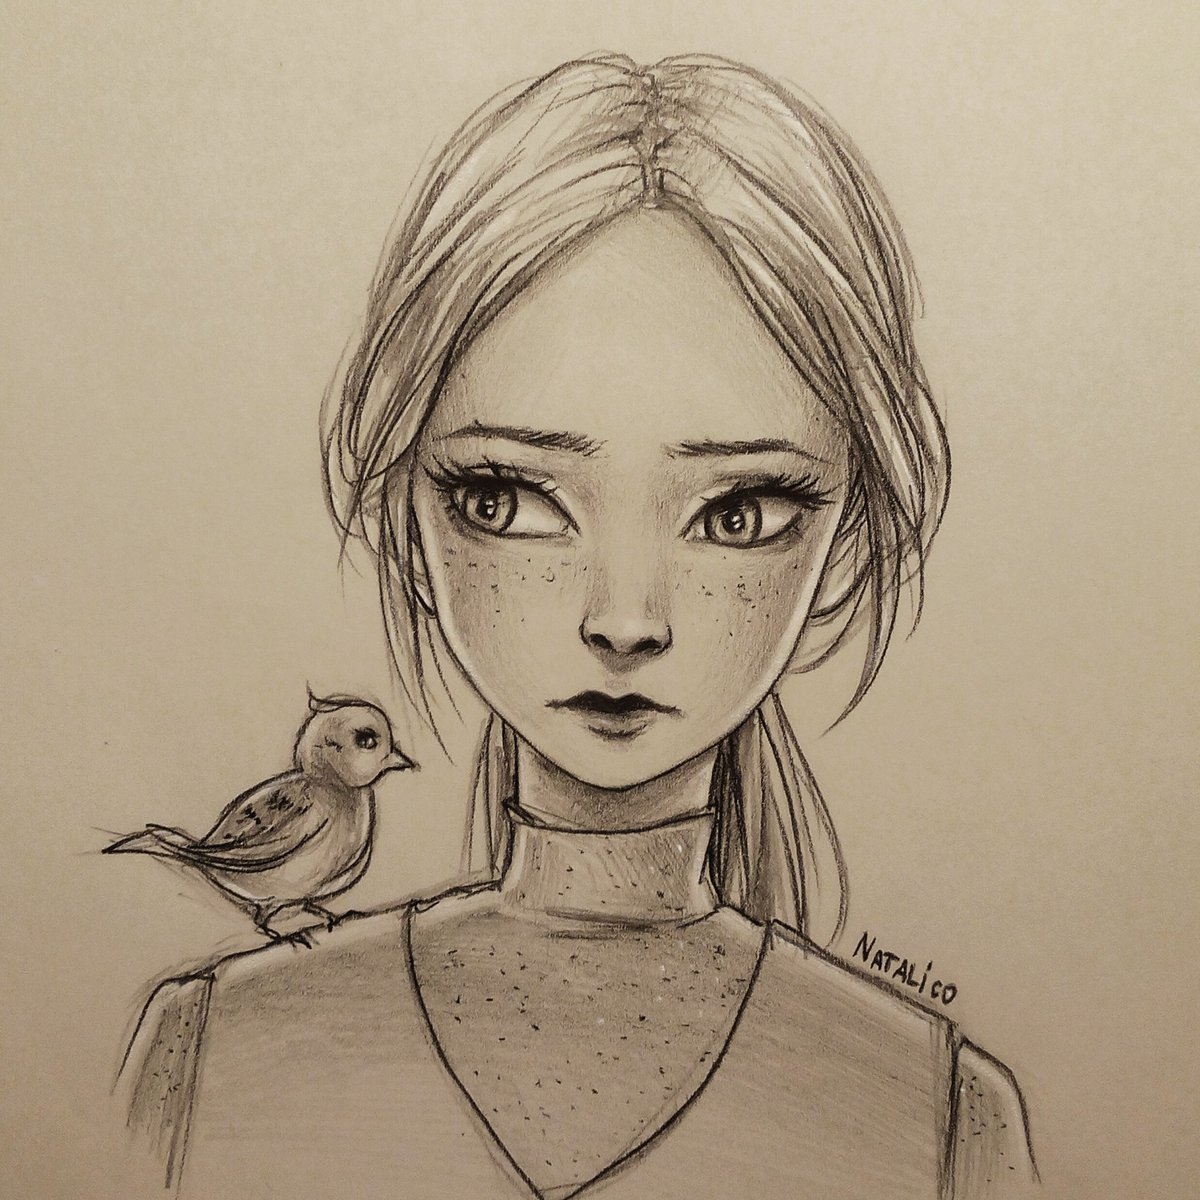 Natalico On Twitter Girl With A Bird Traditional